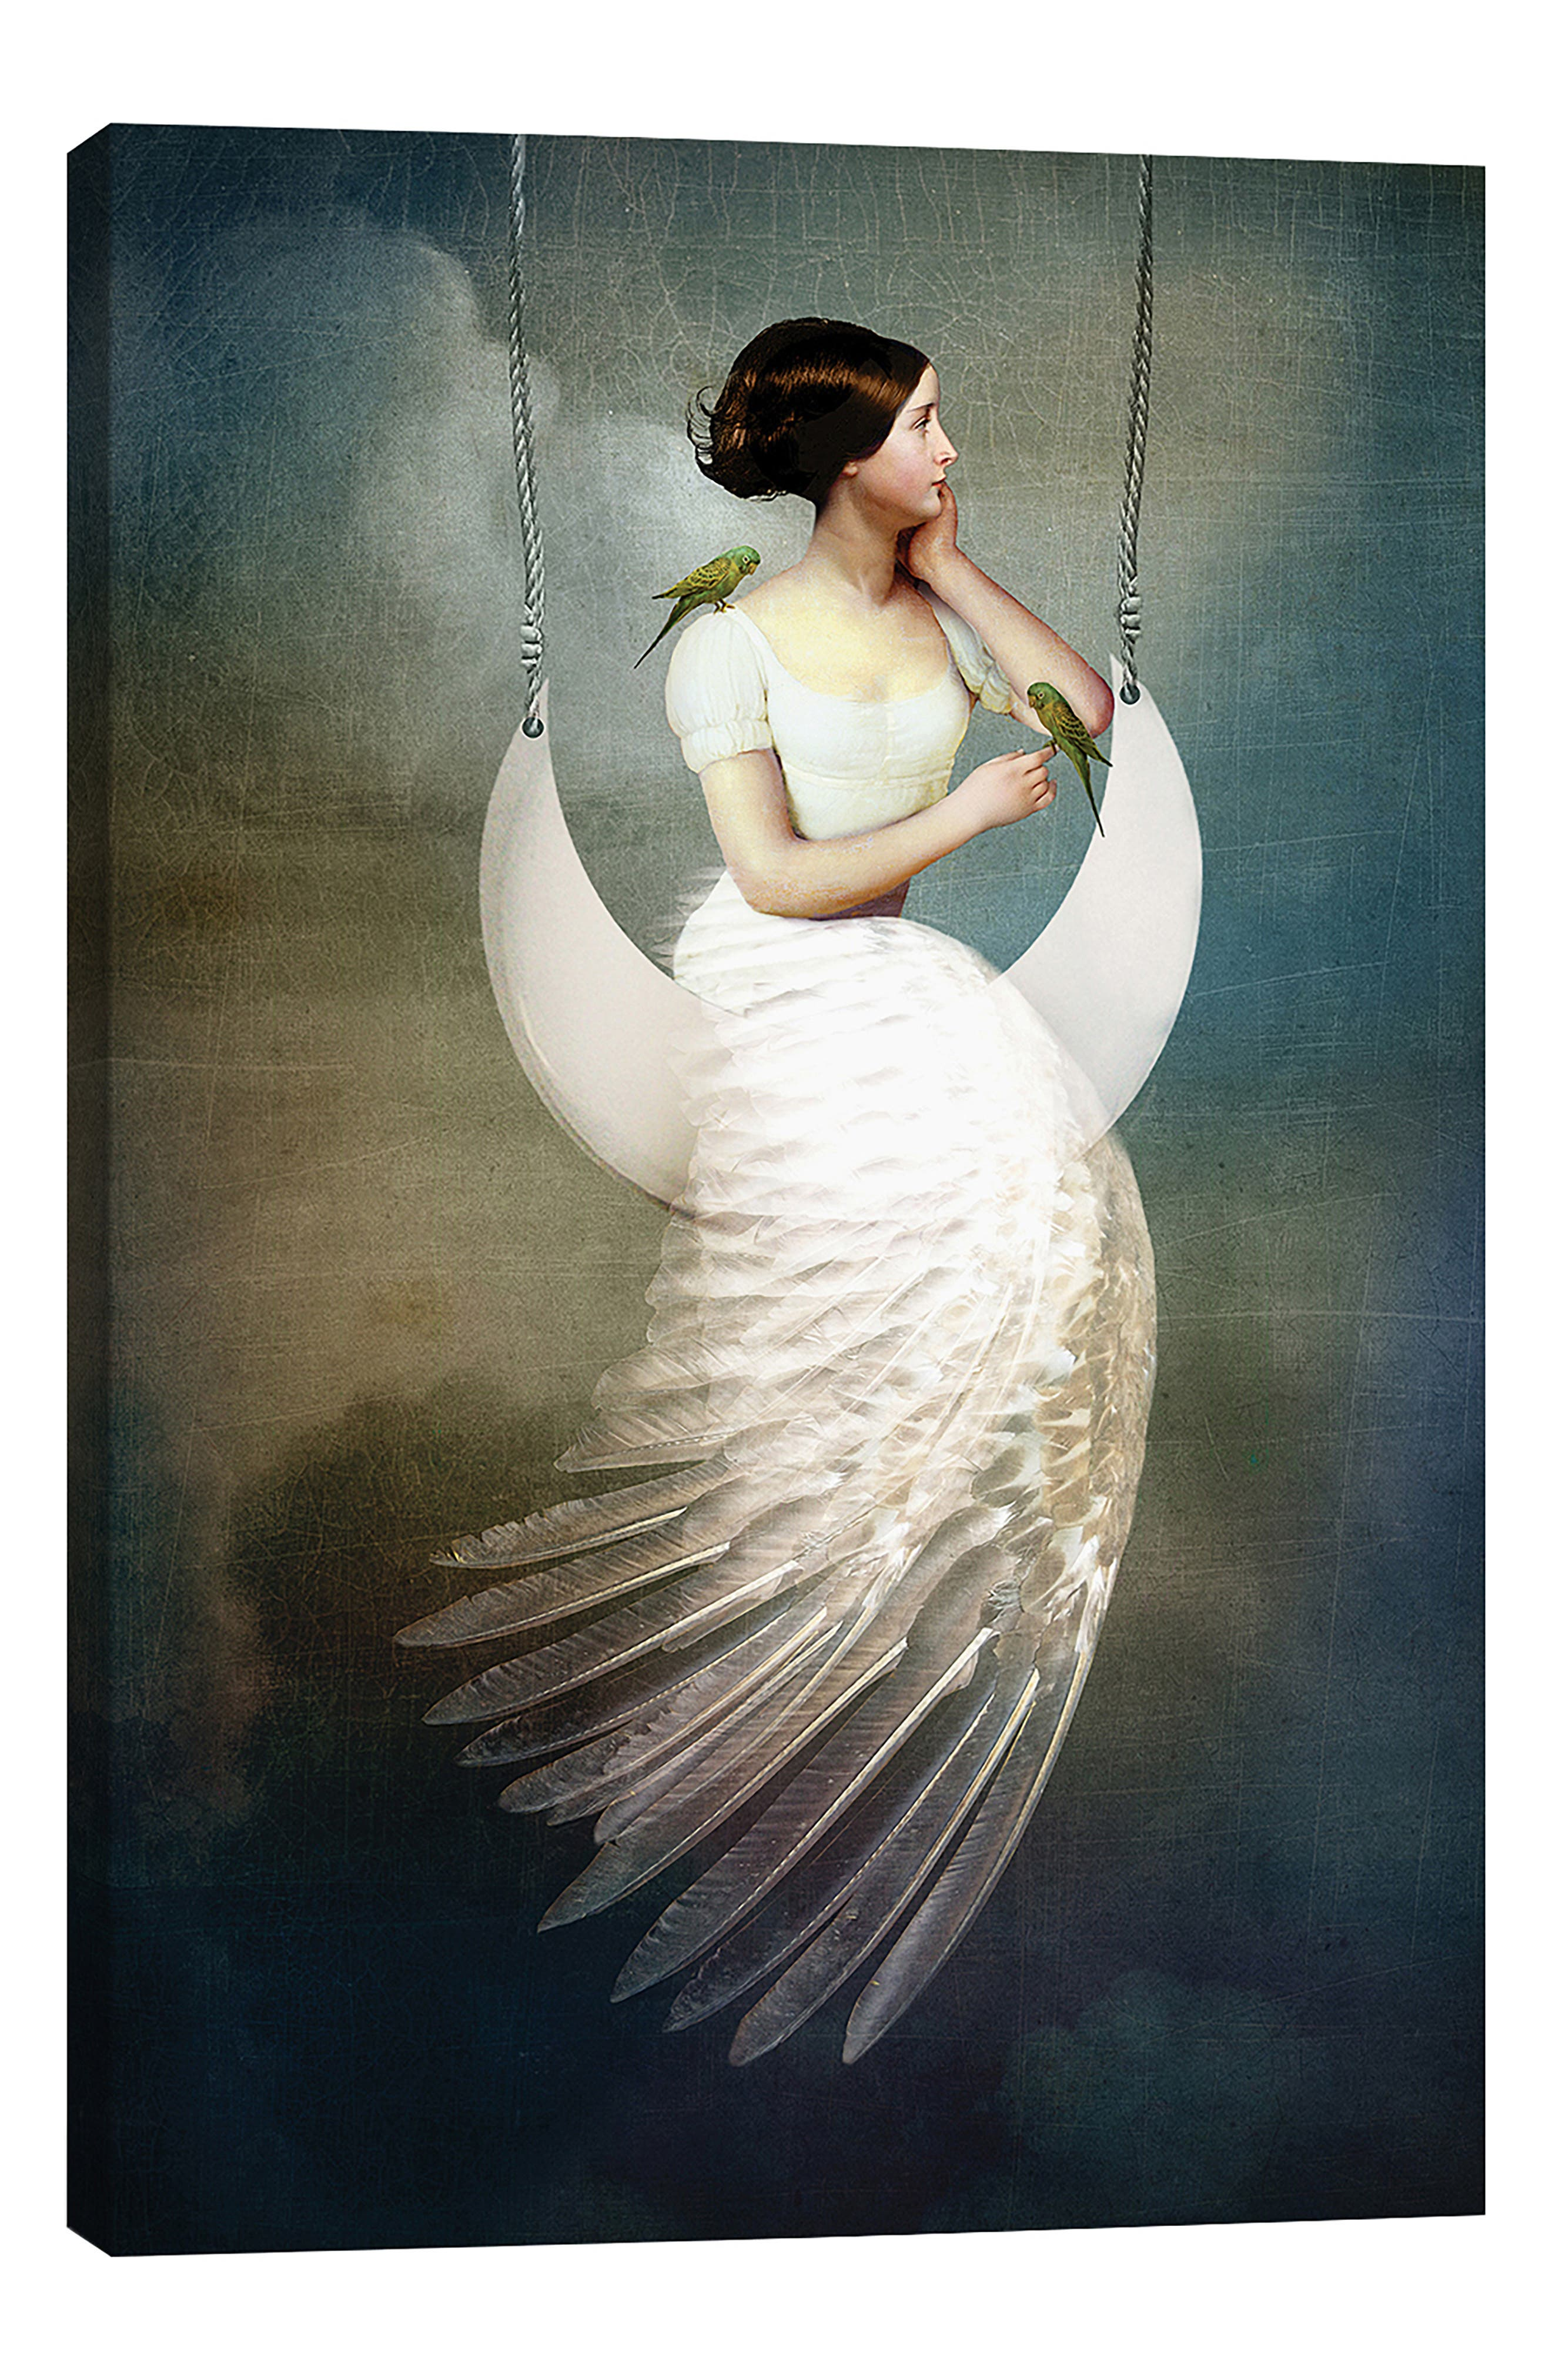 ICANVAS To the Moon & Back by Catrin Welz-Stein Giclée Print Canvas Art, Main, color, GREEN